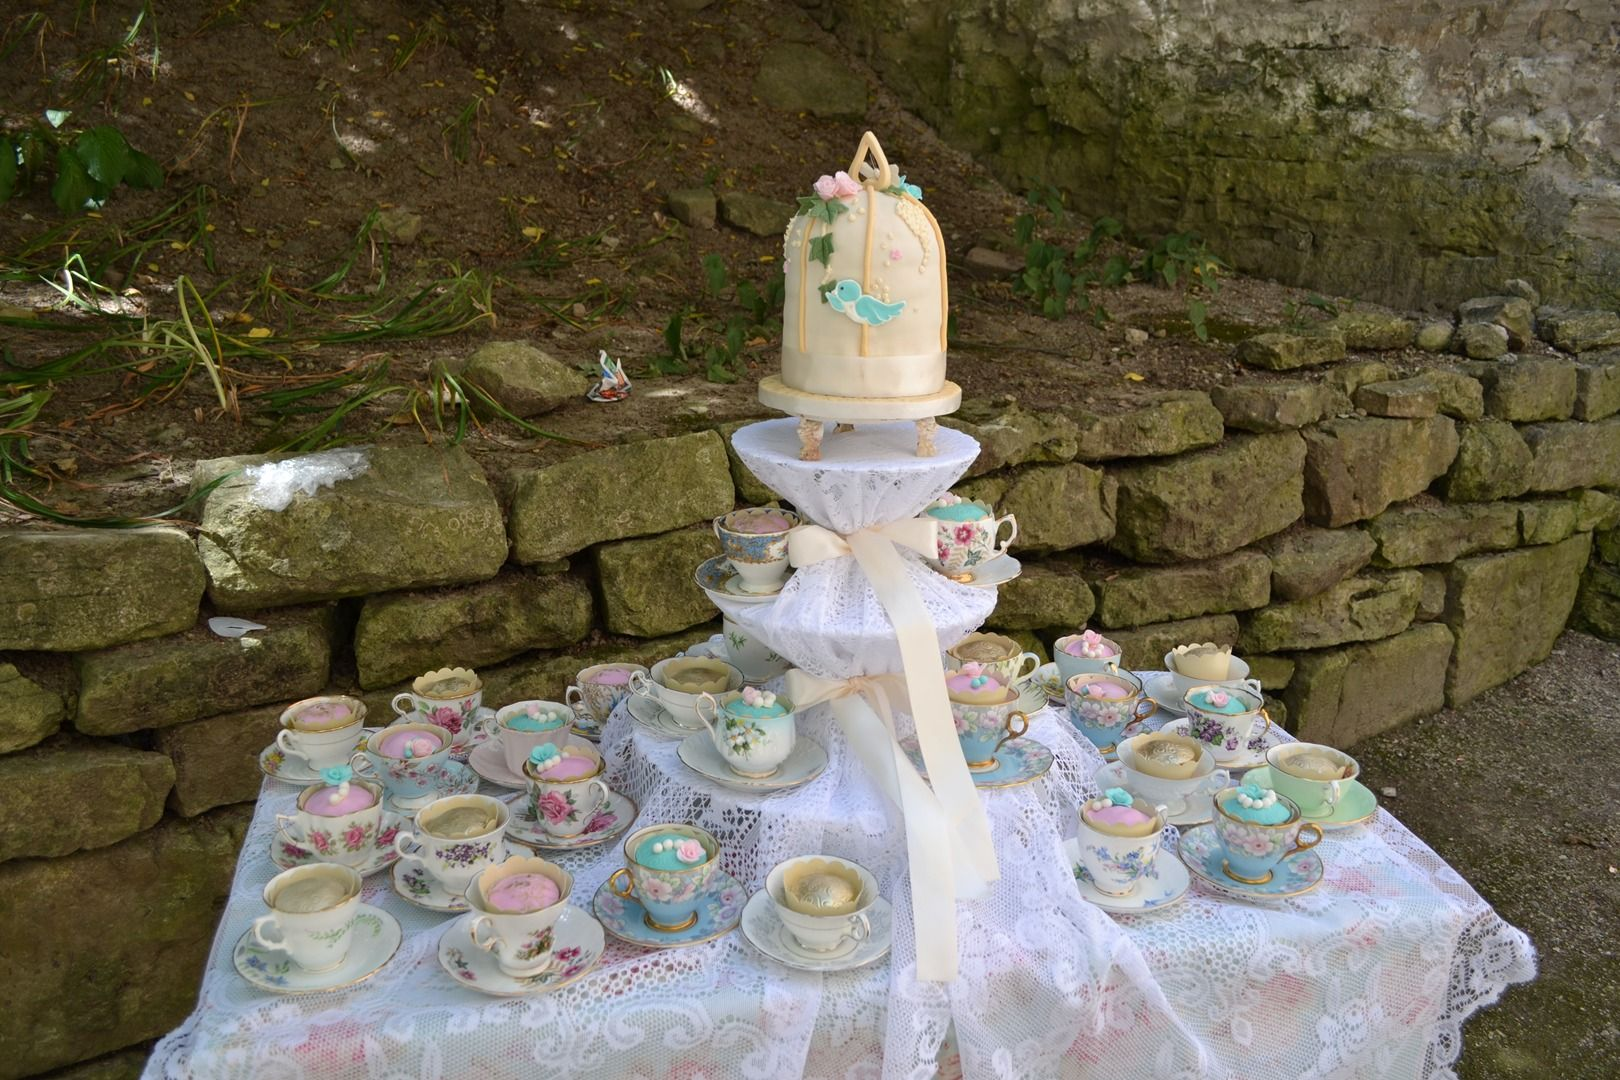 Tea party dessert spread with a lovely cake and cupcakes in tea cups and saucers Boutique Baker